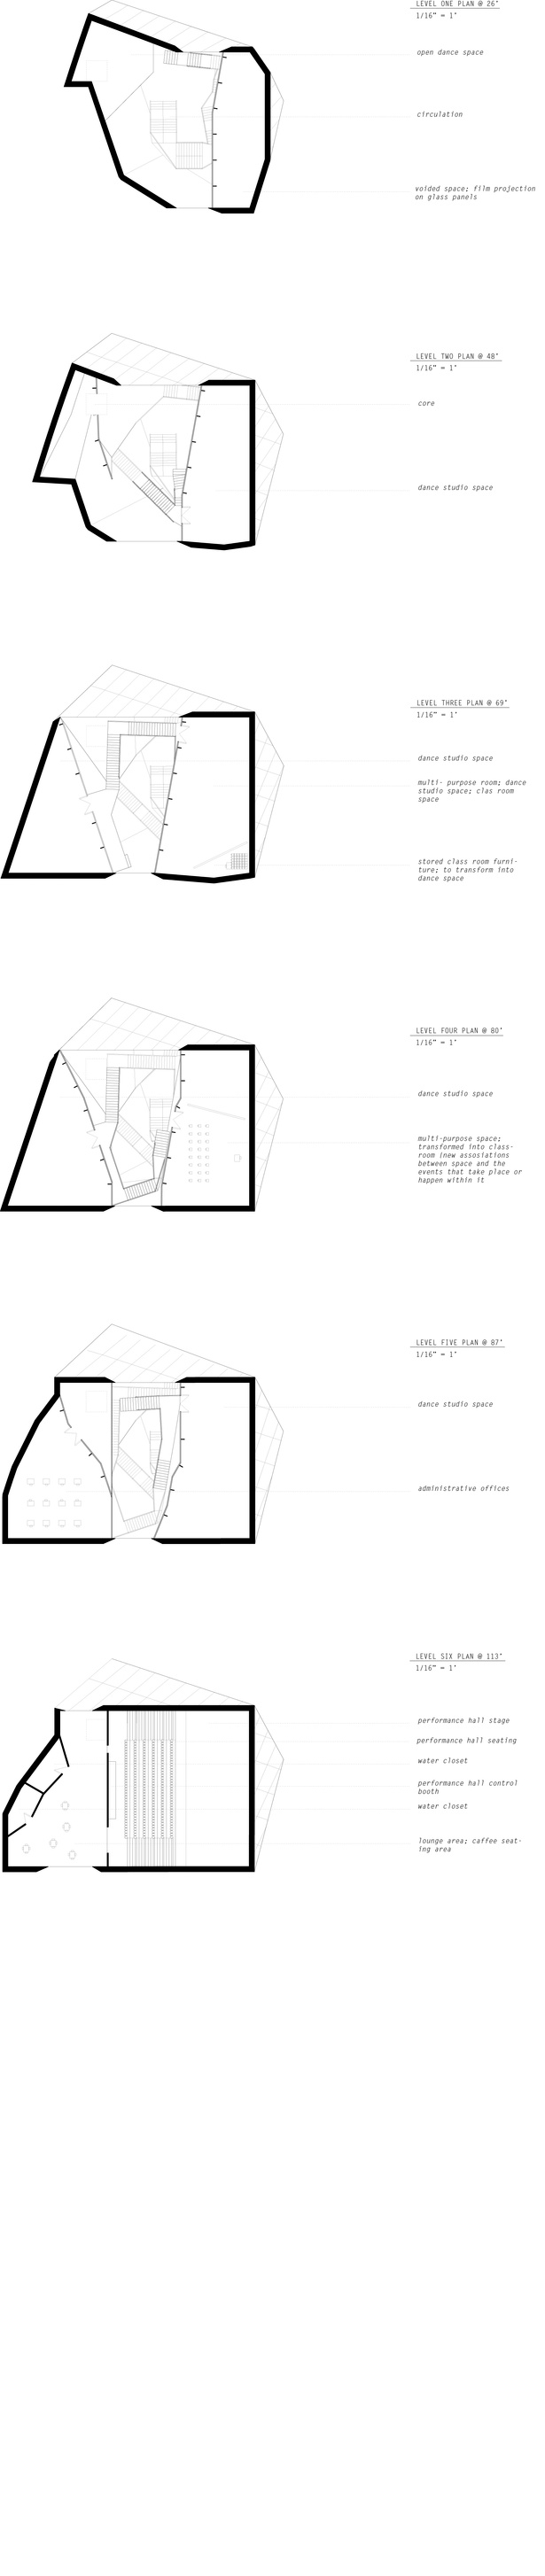 plan floor drawings and distribution of spaces